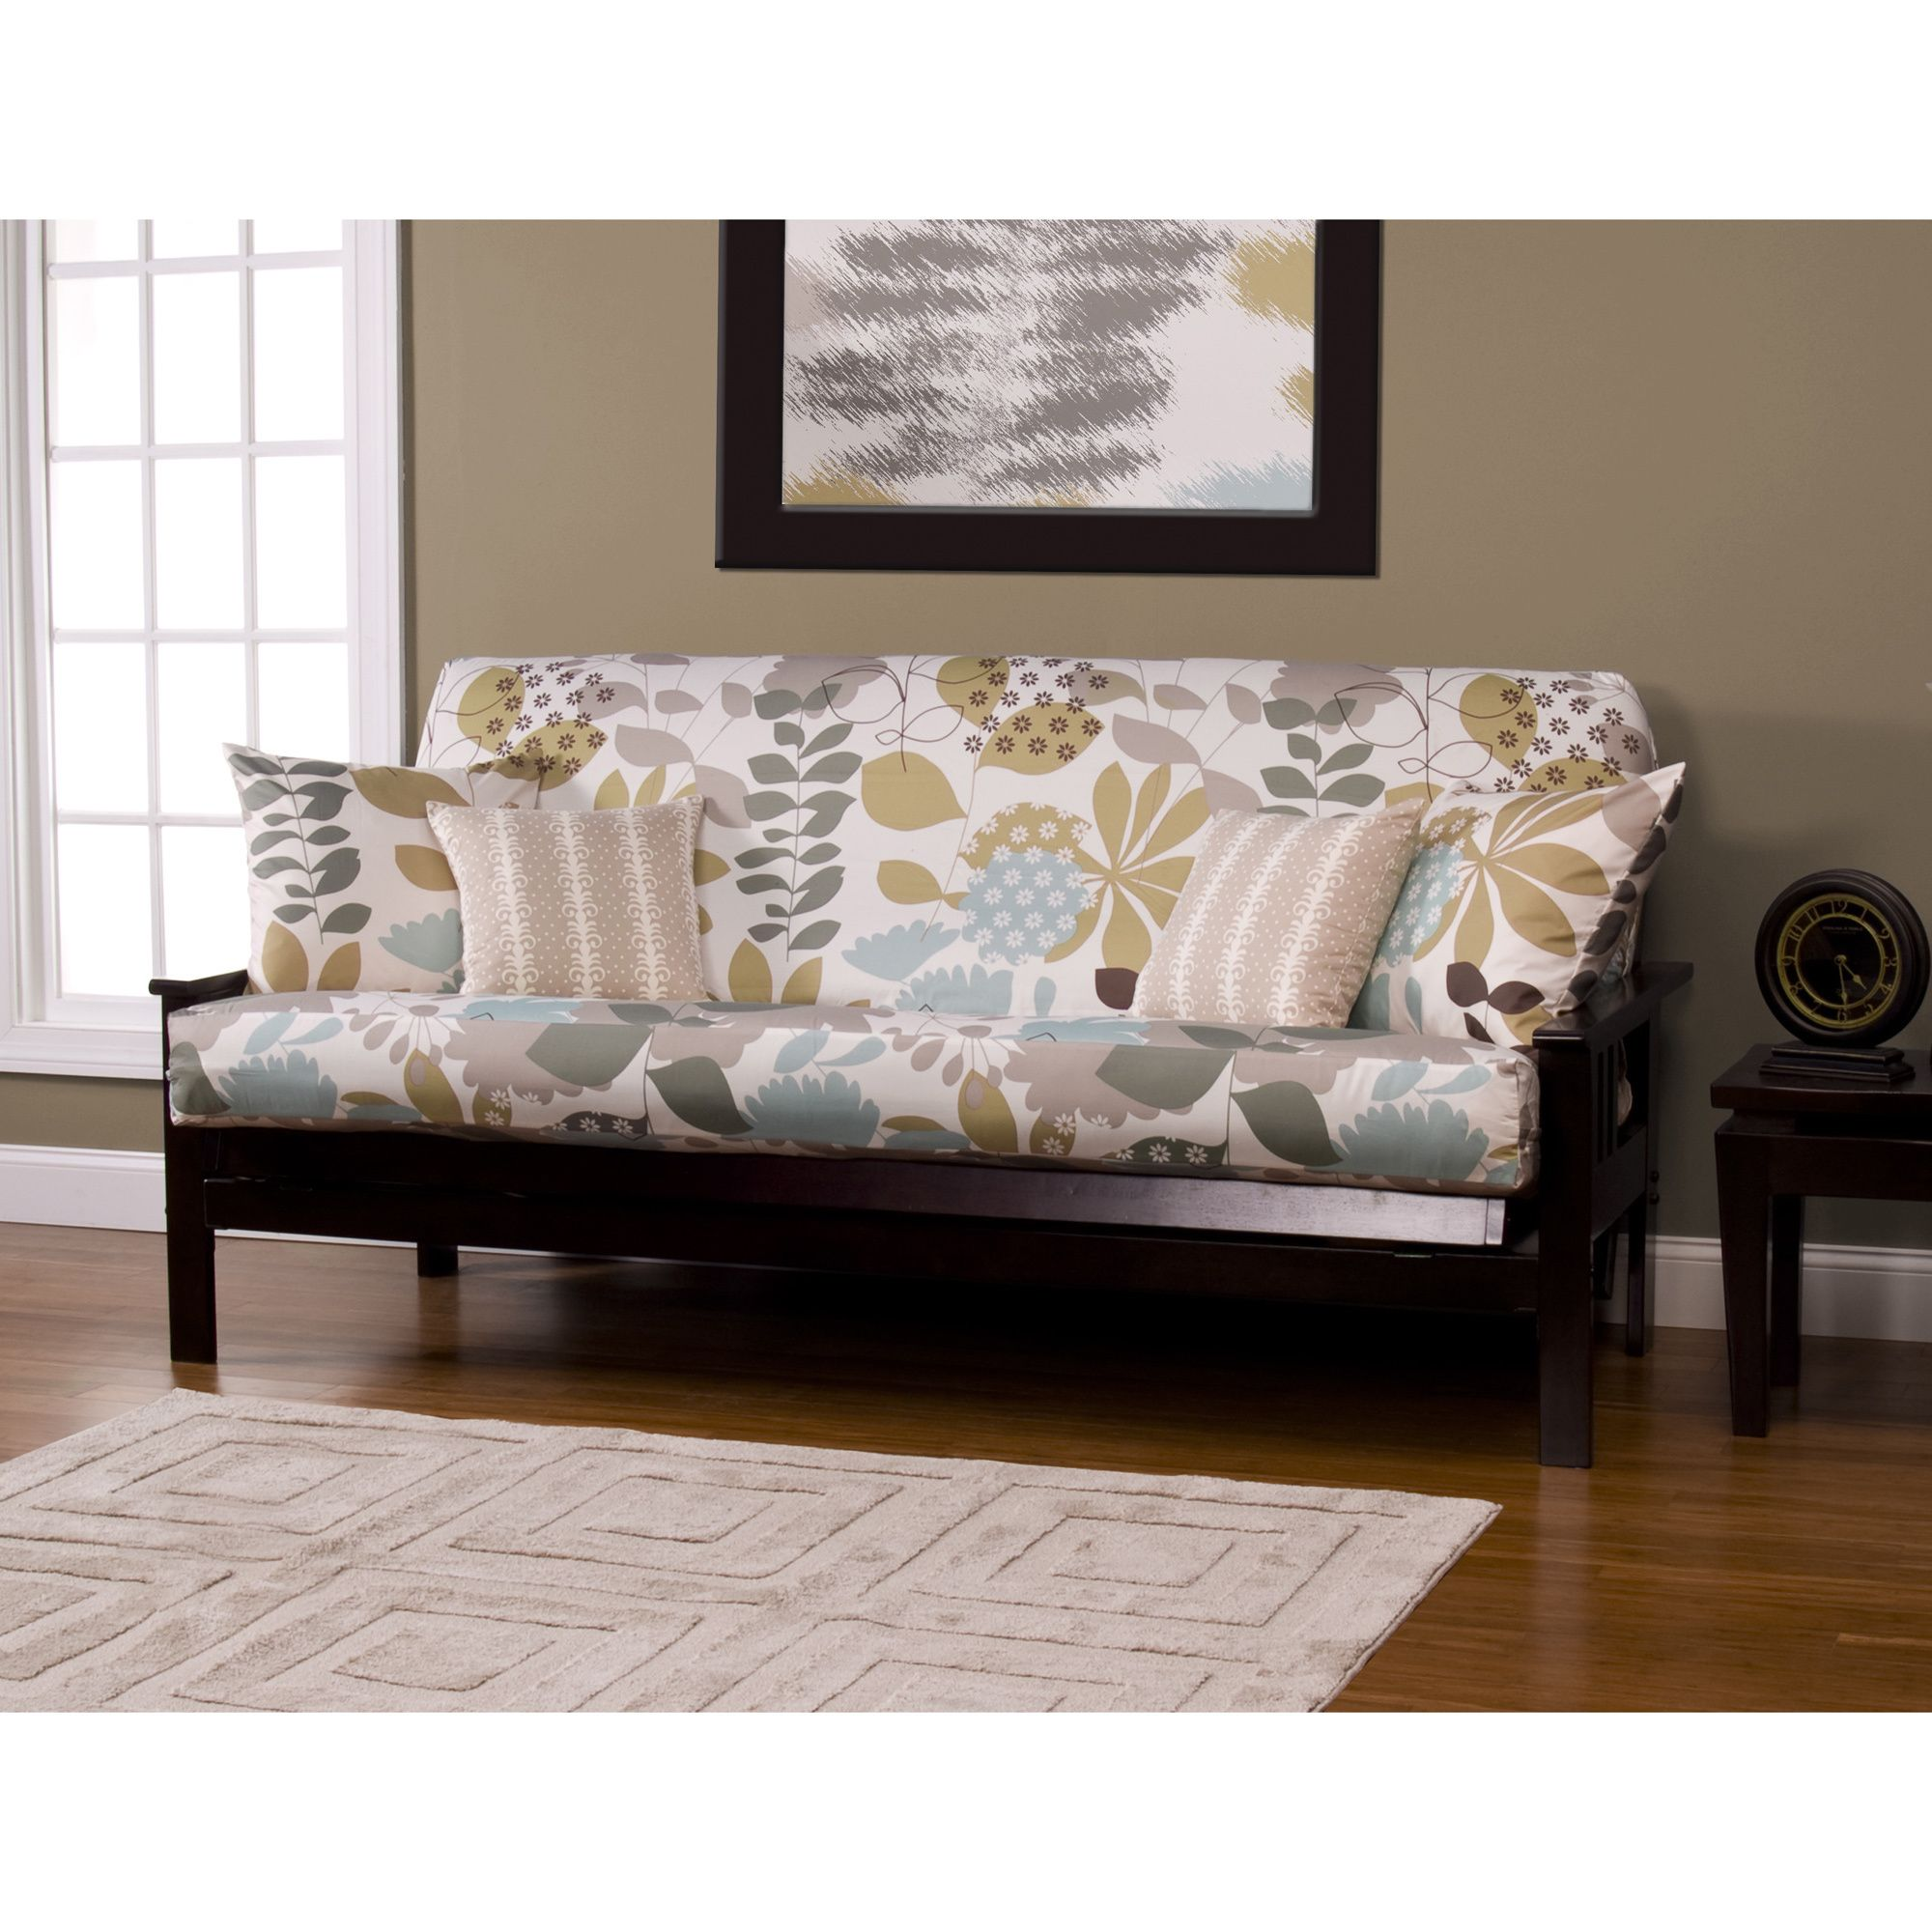 Update The Look Of Your Futon With This Modern Full Size Cover From English Garden Features A Vibrant Fl Pattern In Hues Brown